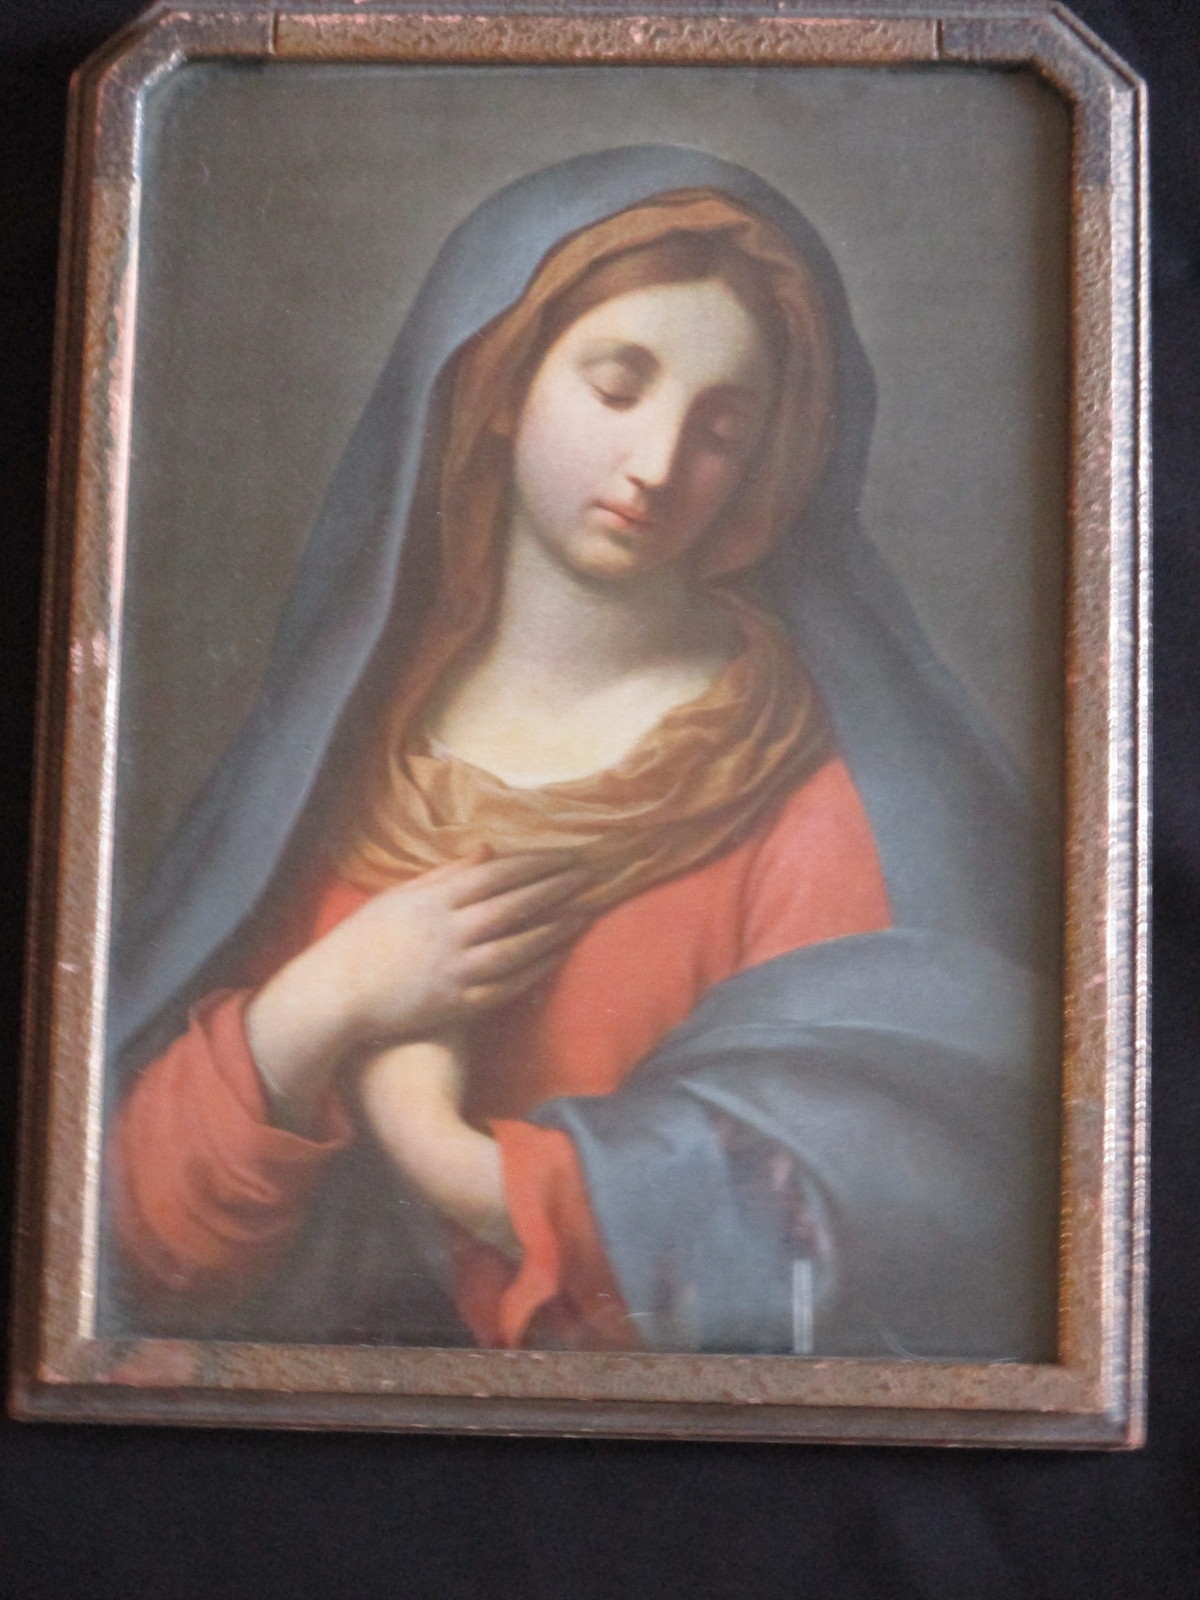 Vtg (1920's) Virgin Mary Litho in Original Frame